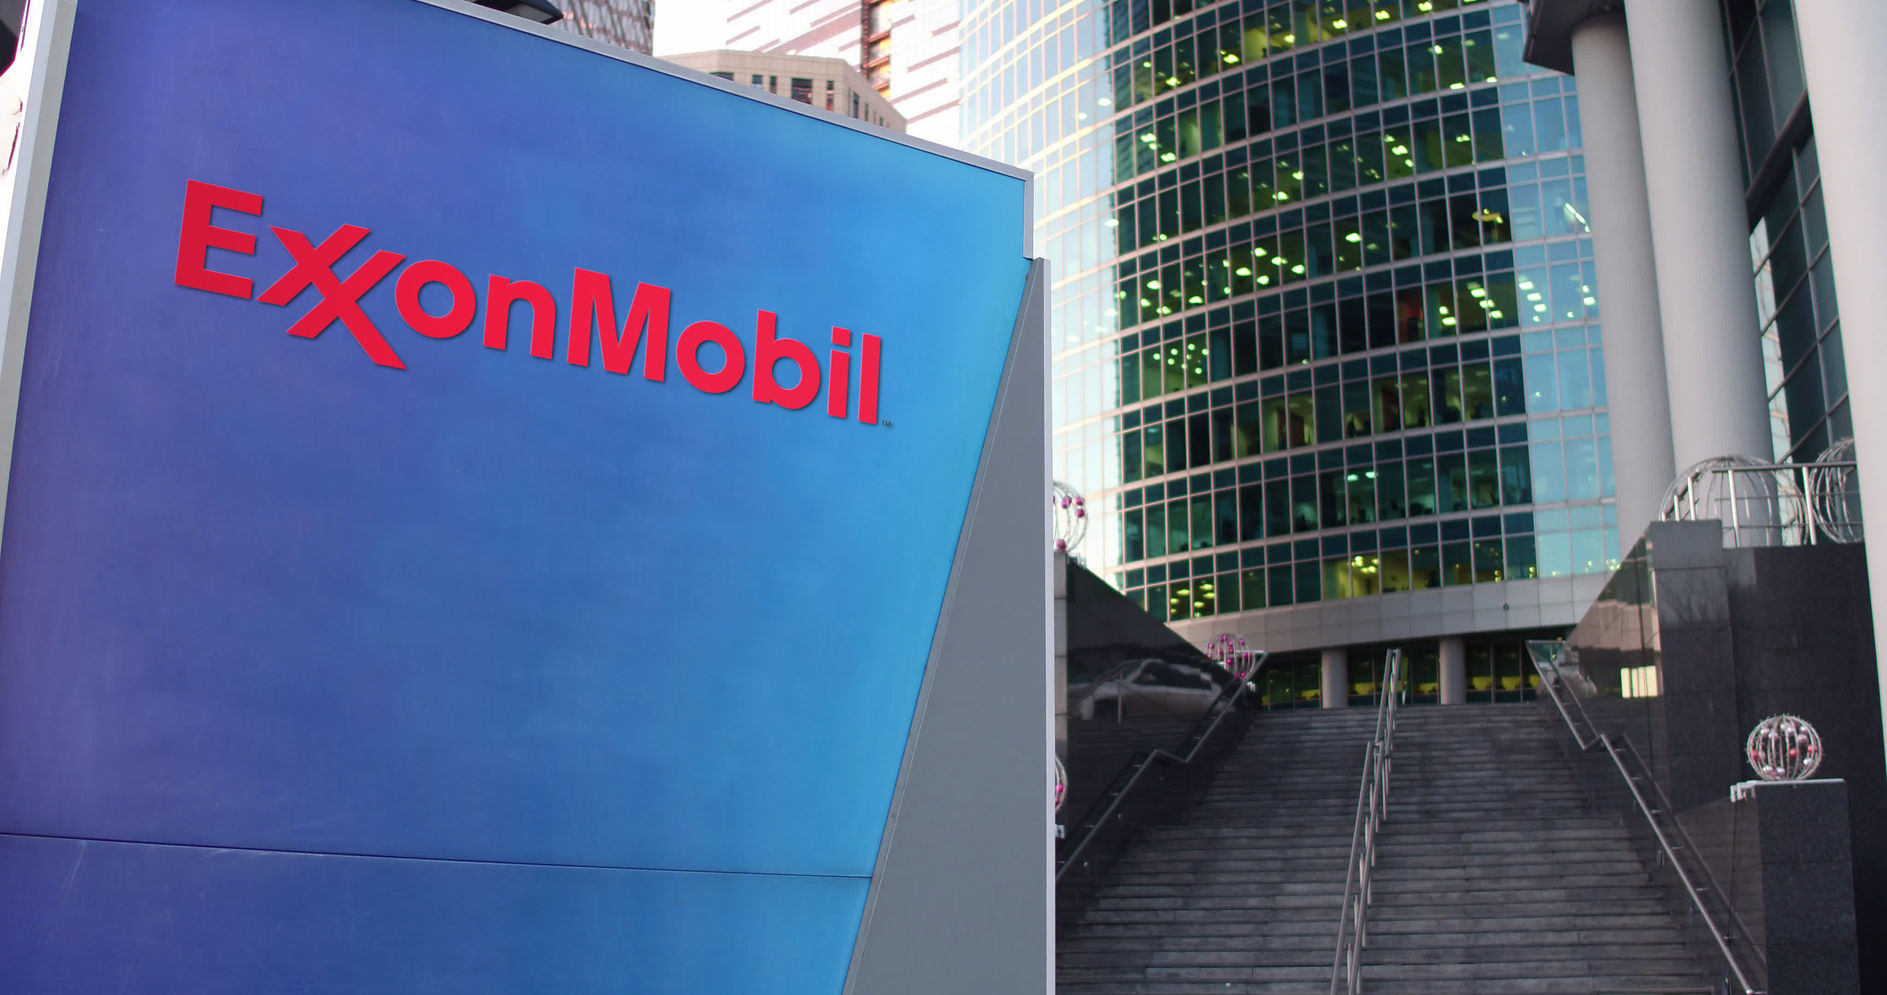 Exxon Mobil's Ambiguous Relationship with Climate Change